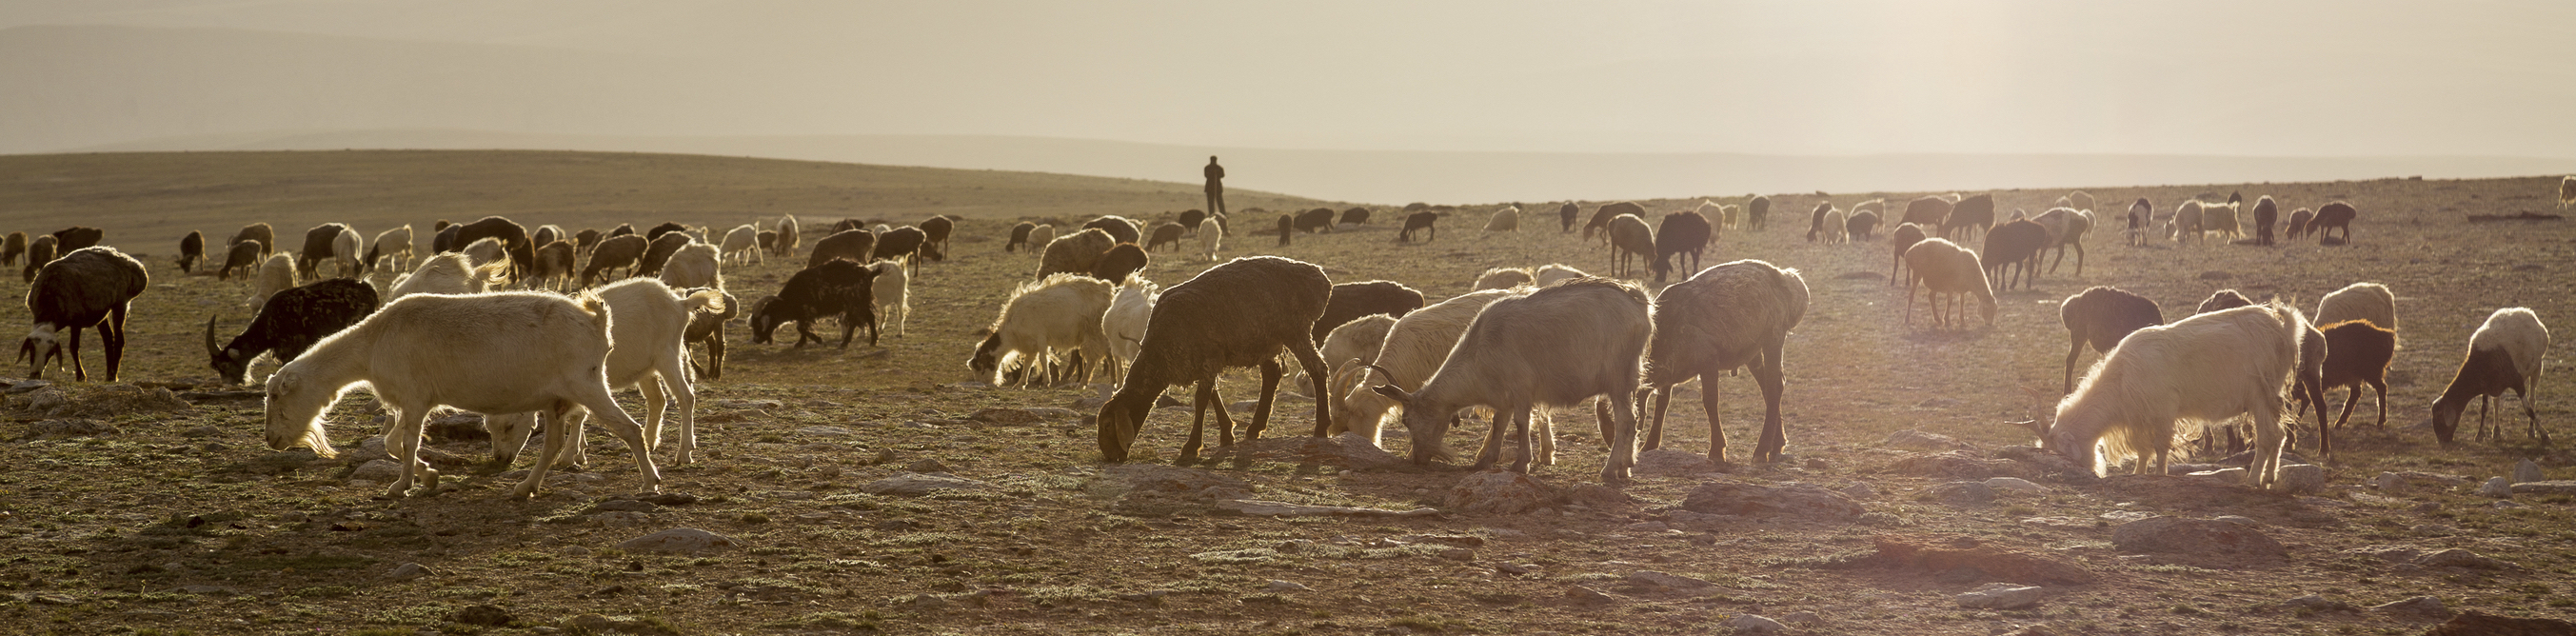 a shepherd is shown observing the flock as they graze